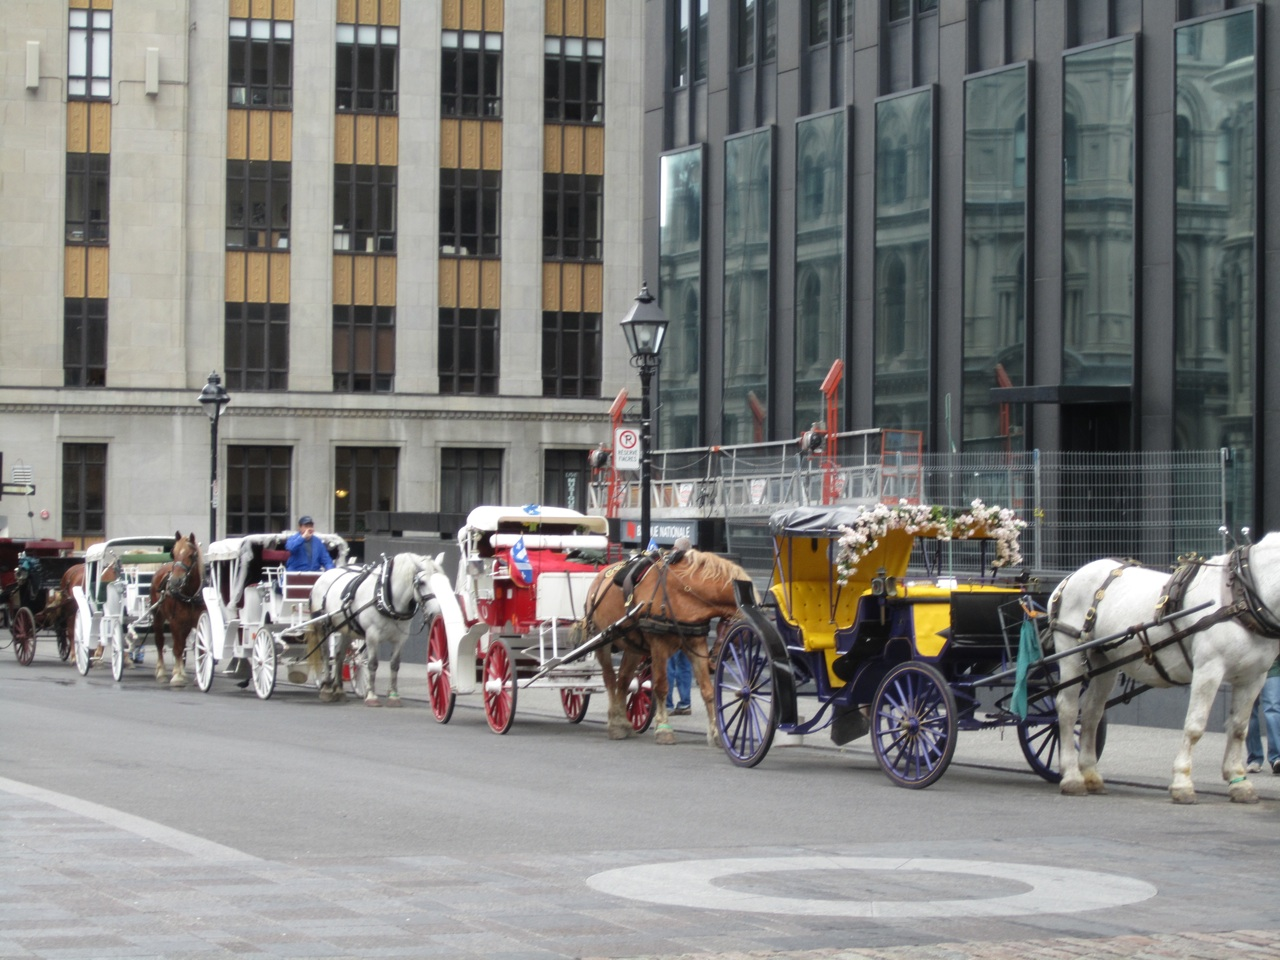 Horse And Buggies For Tours